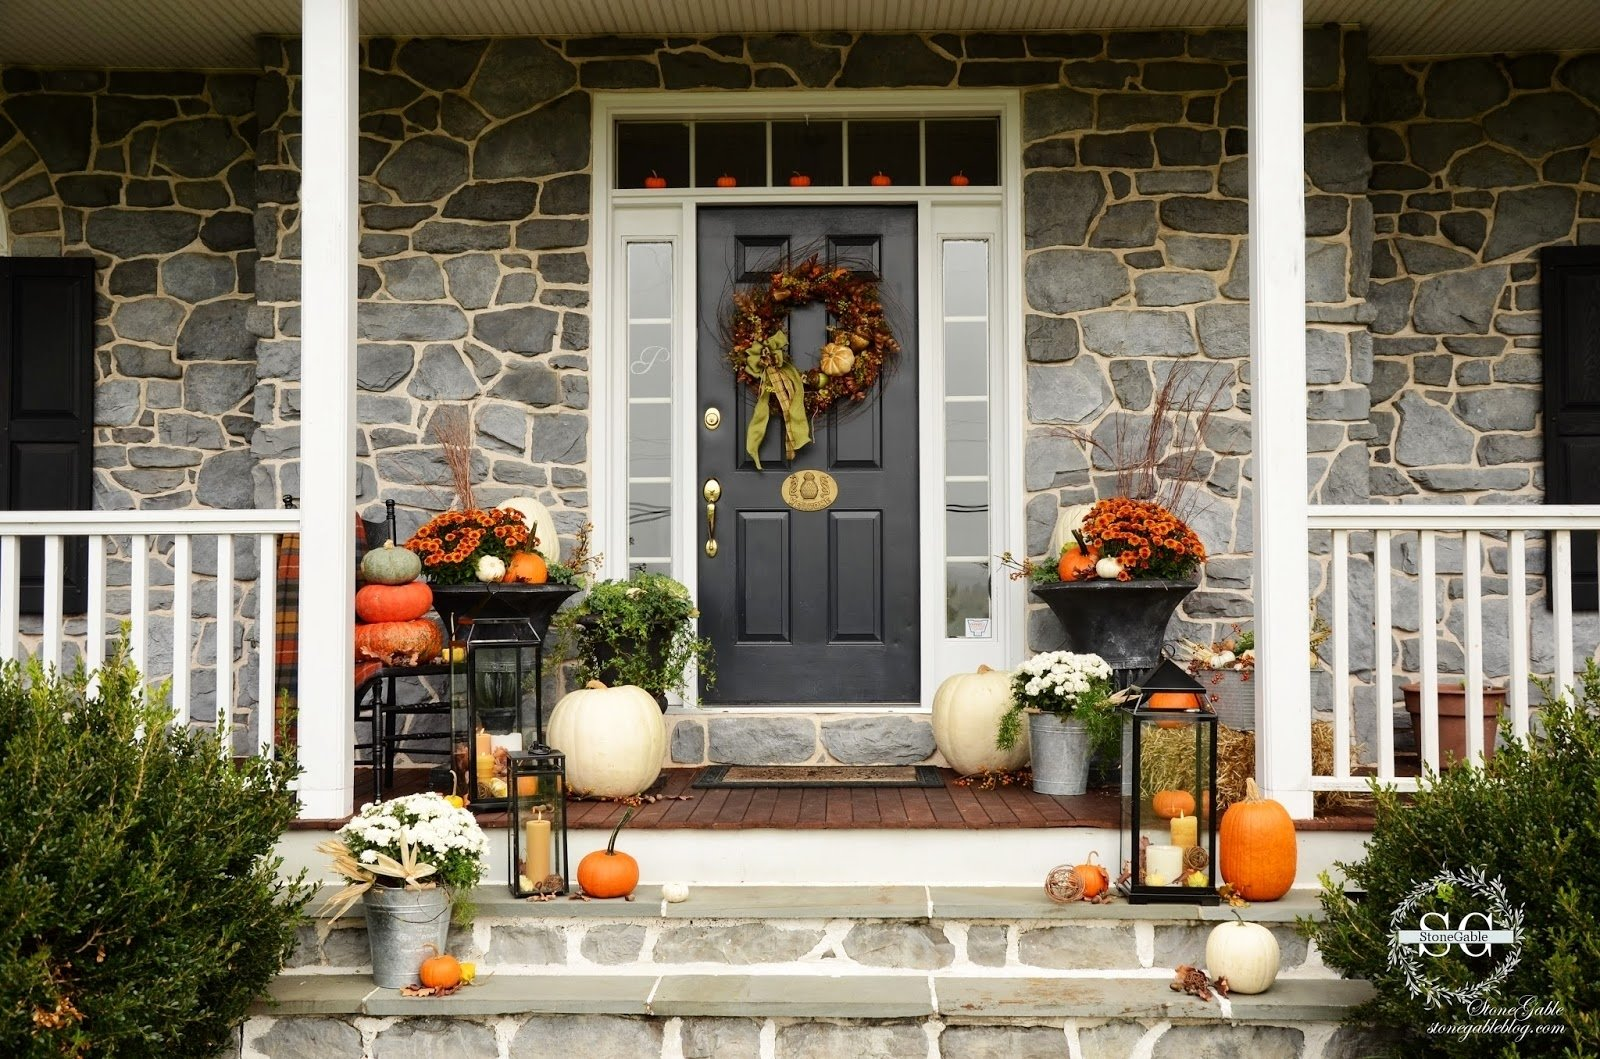 10 Lovely Front Porch Decorating Ideas For Fall fall on the front porch stonegable front porch fall decorating ideas 2